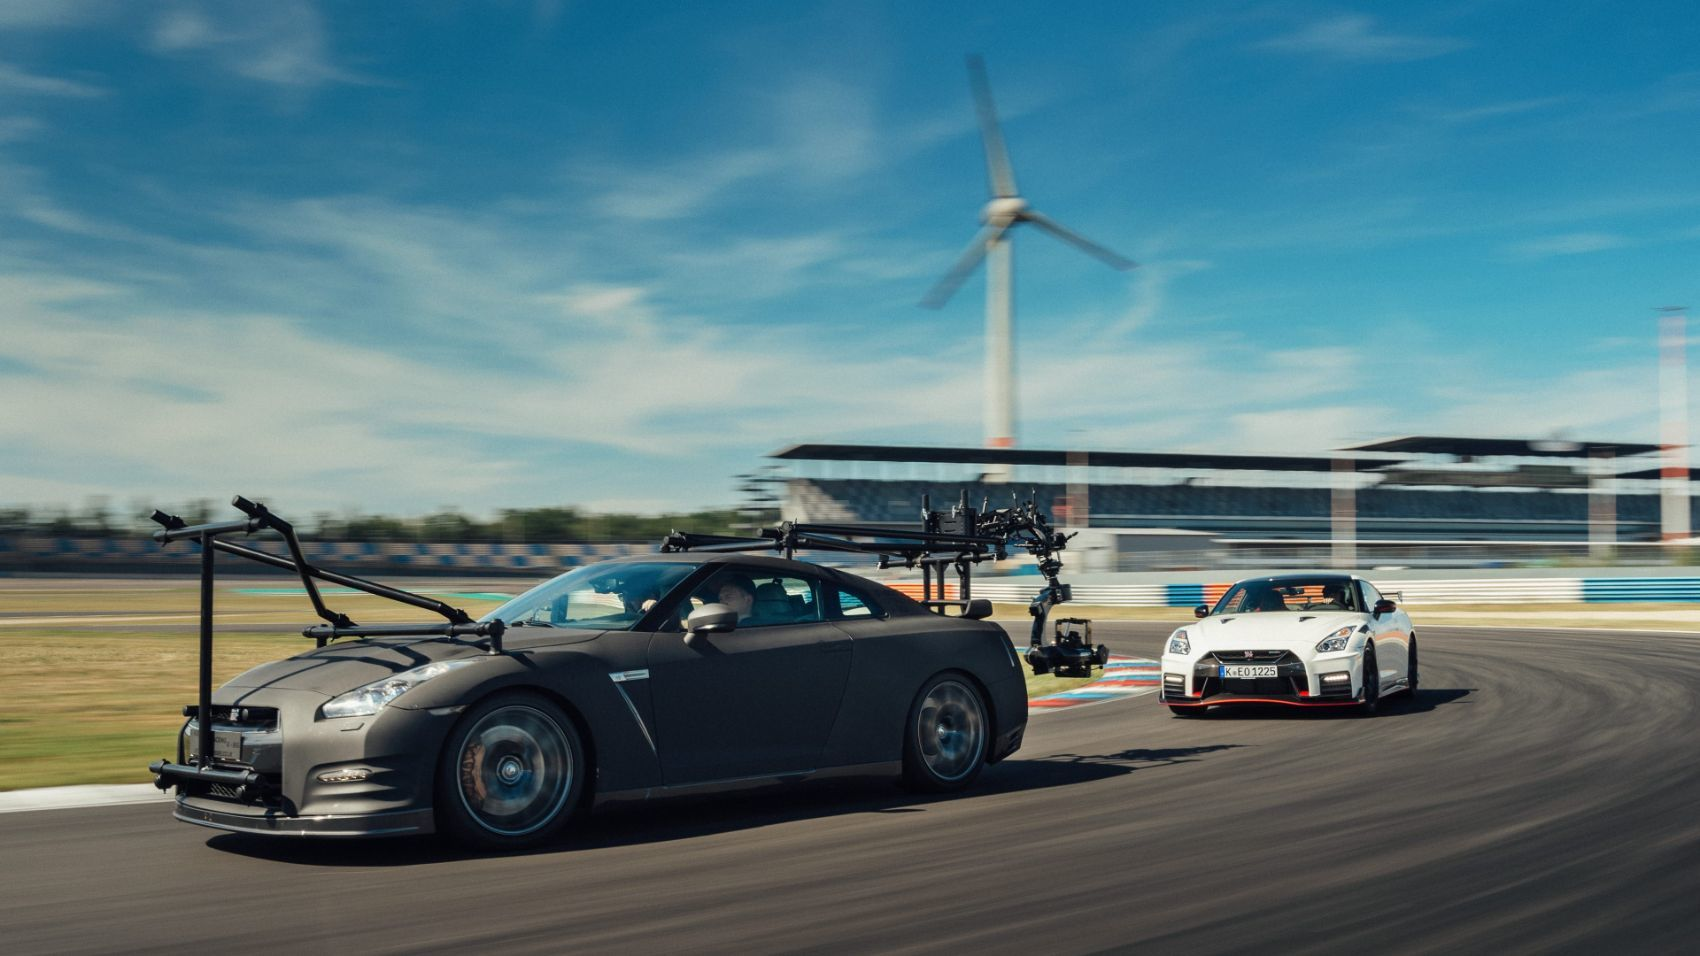 How To Film The Nissan GT-R NISMO? Easy. With Another GT-R! 15